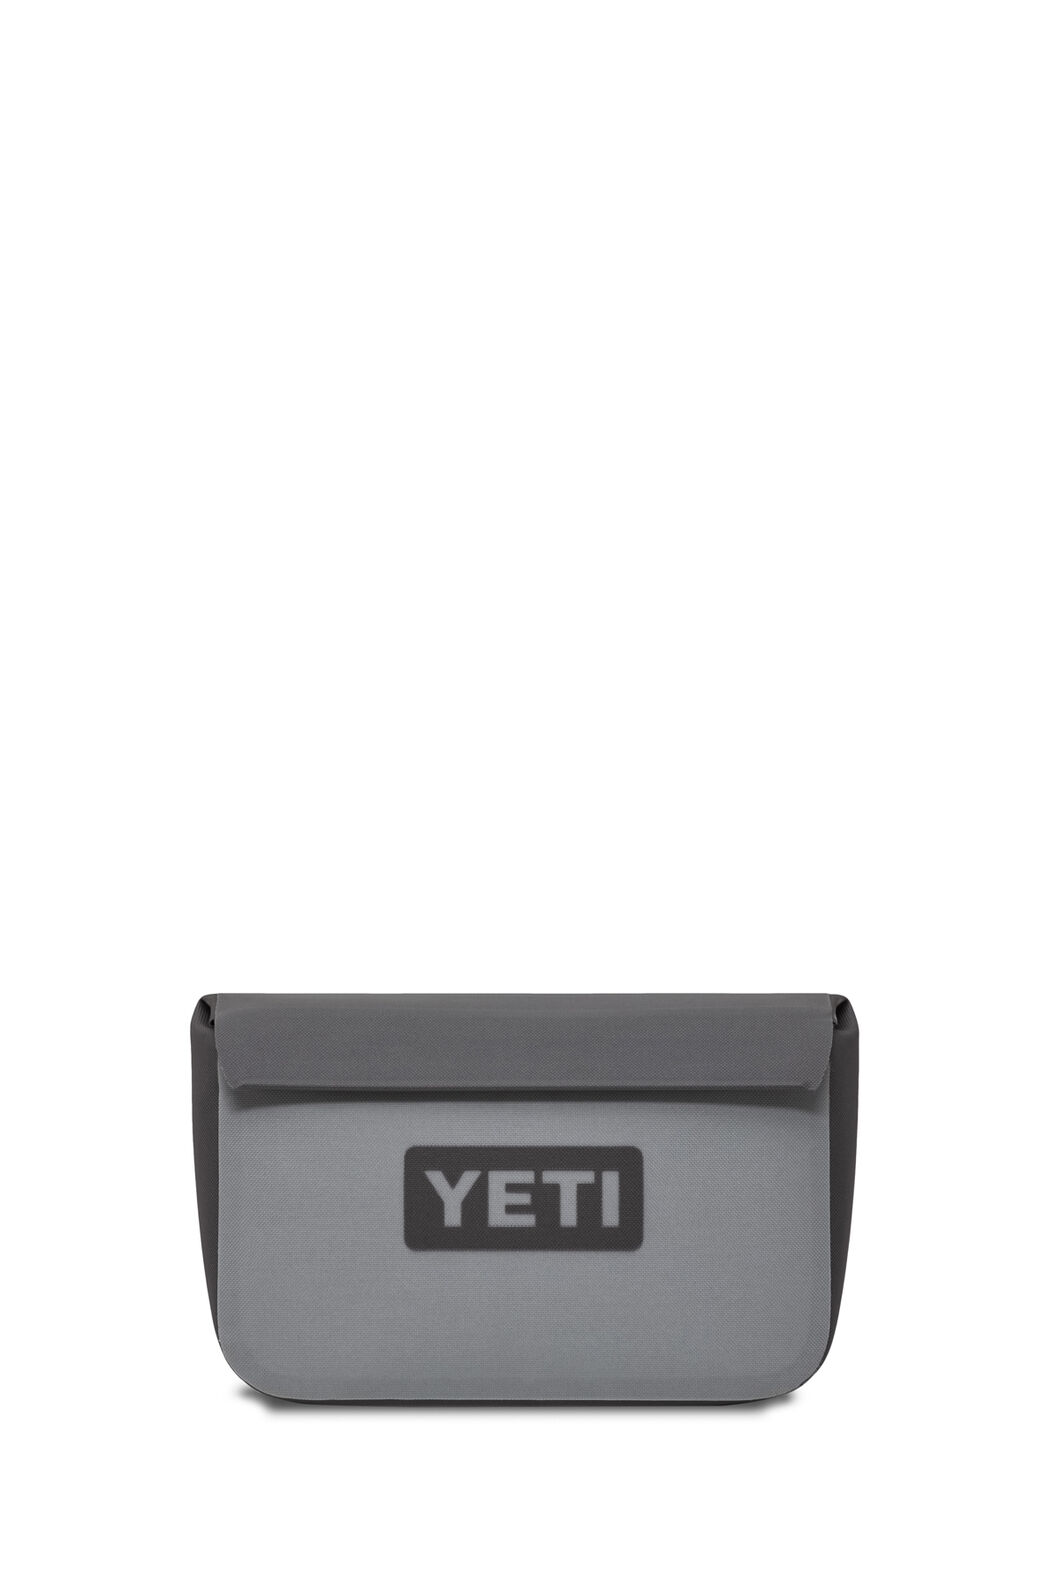 Yeti Hopper Sidekick Dry Soft Cooler, Fog Grey, hi-res